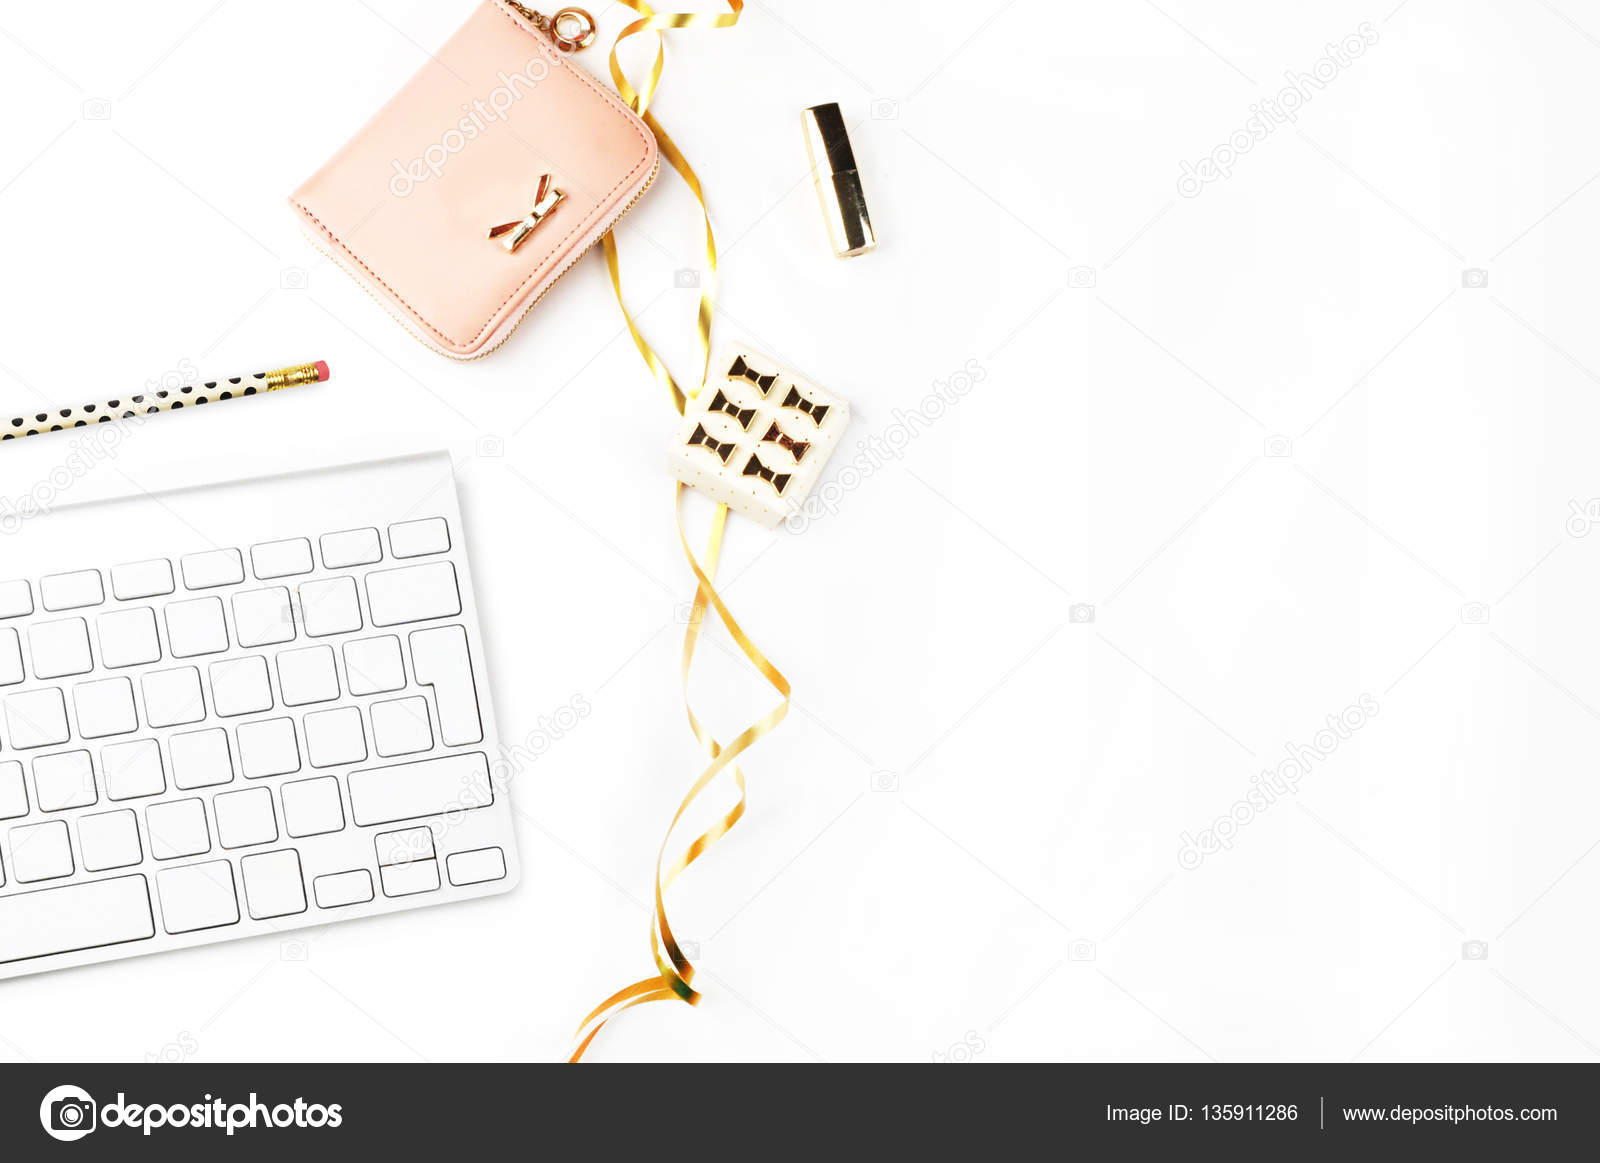 Table view office items, white background mock-up, woman desk ...